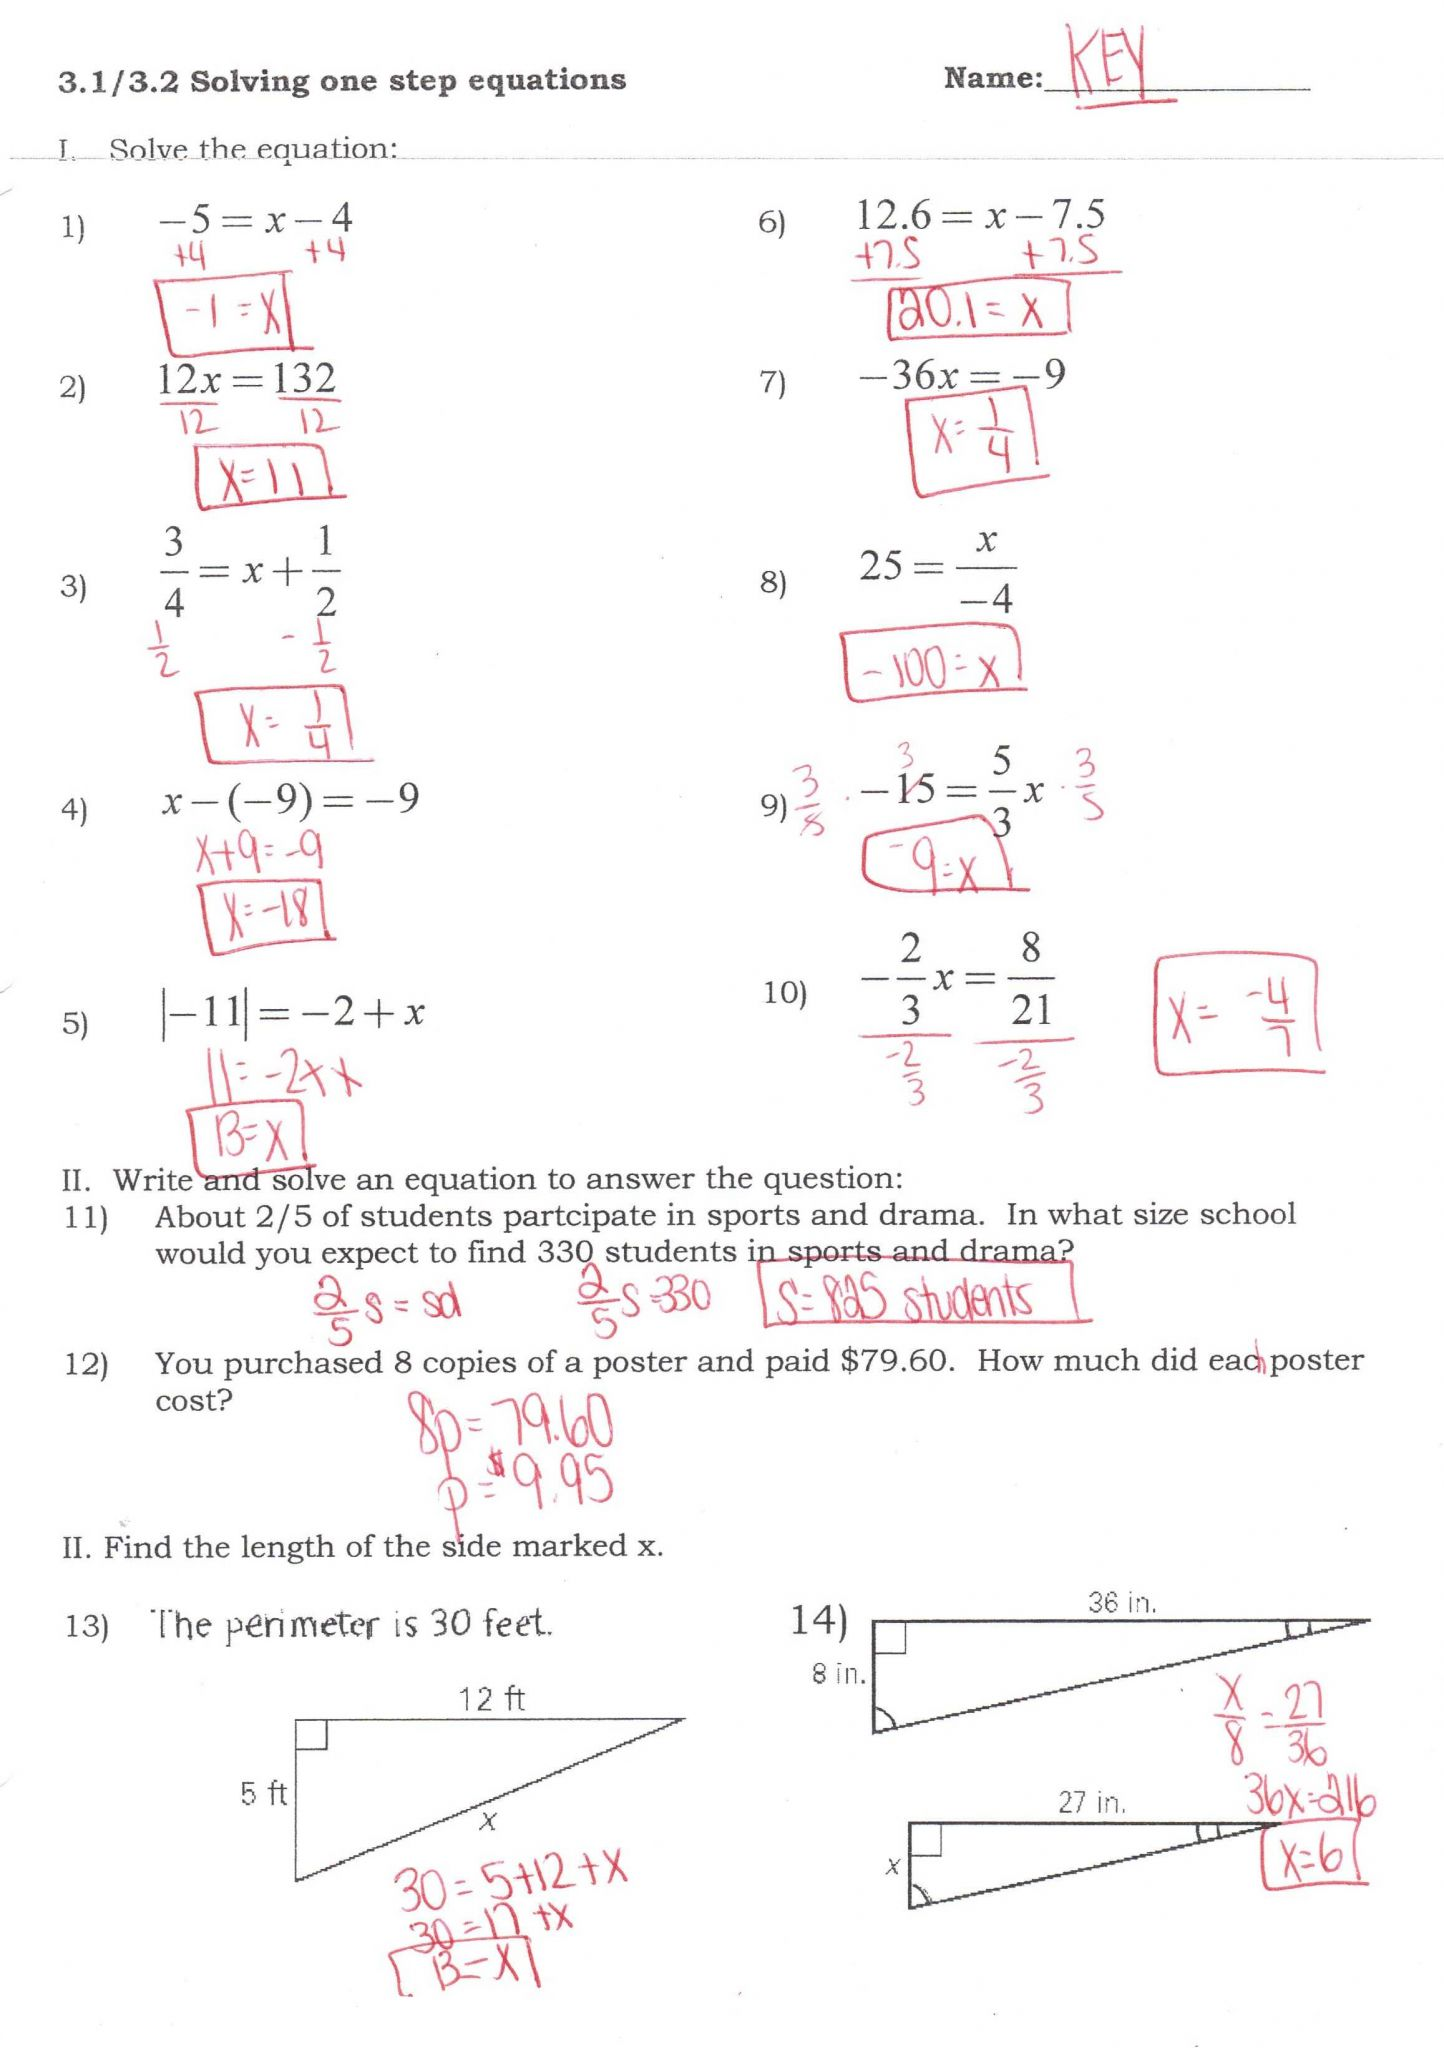 Characteristics Of Quadratic Functions Worksheet Answers Along with Graphing Quadratic Functions Worksheet Answer Key Unique Pre Algebra